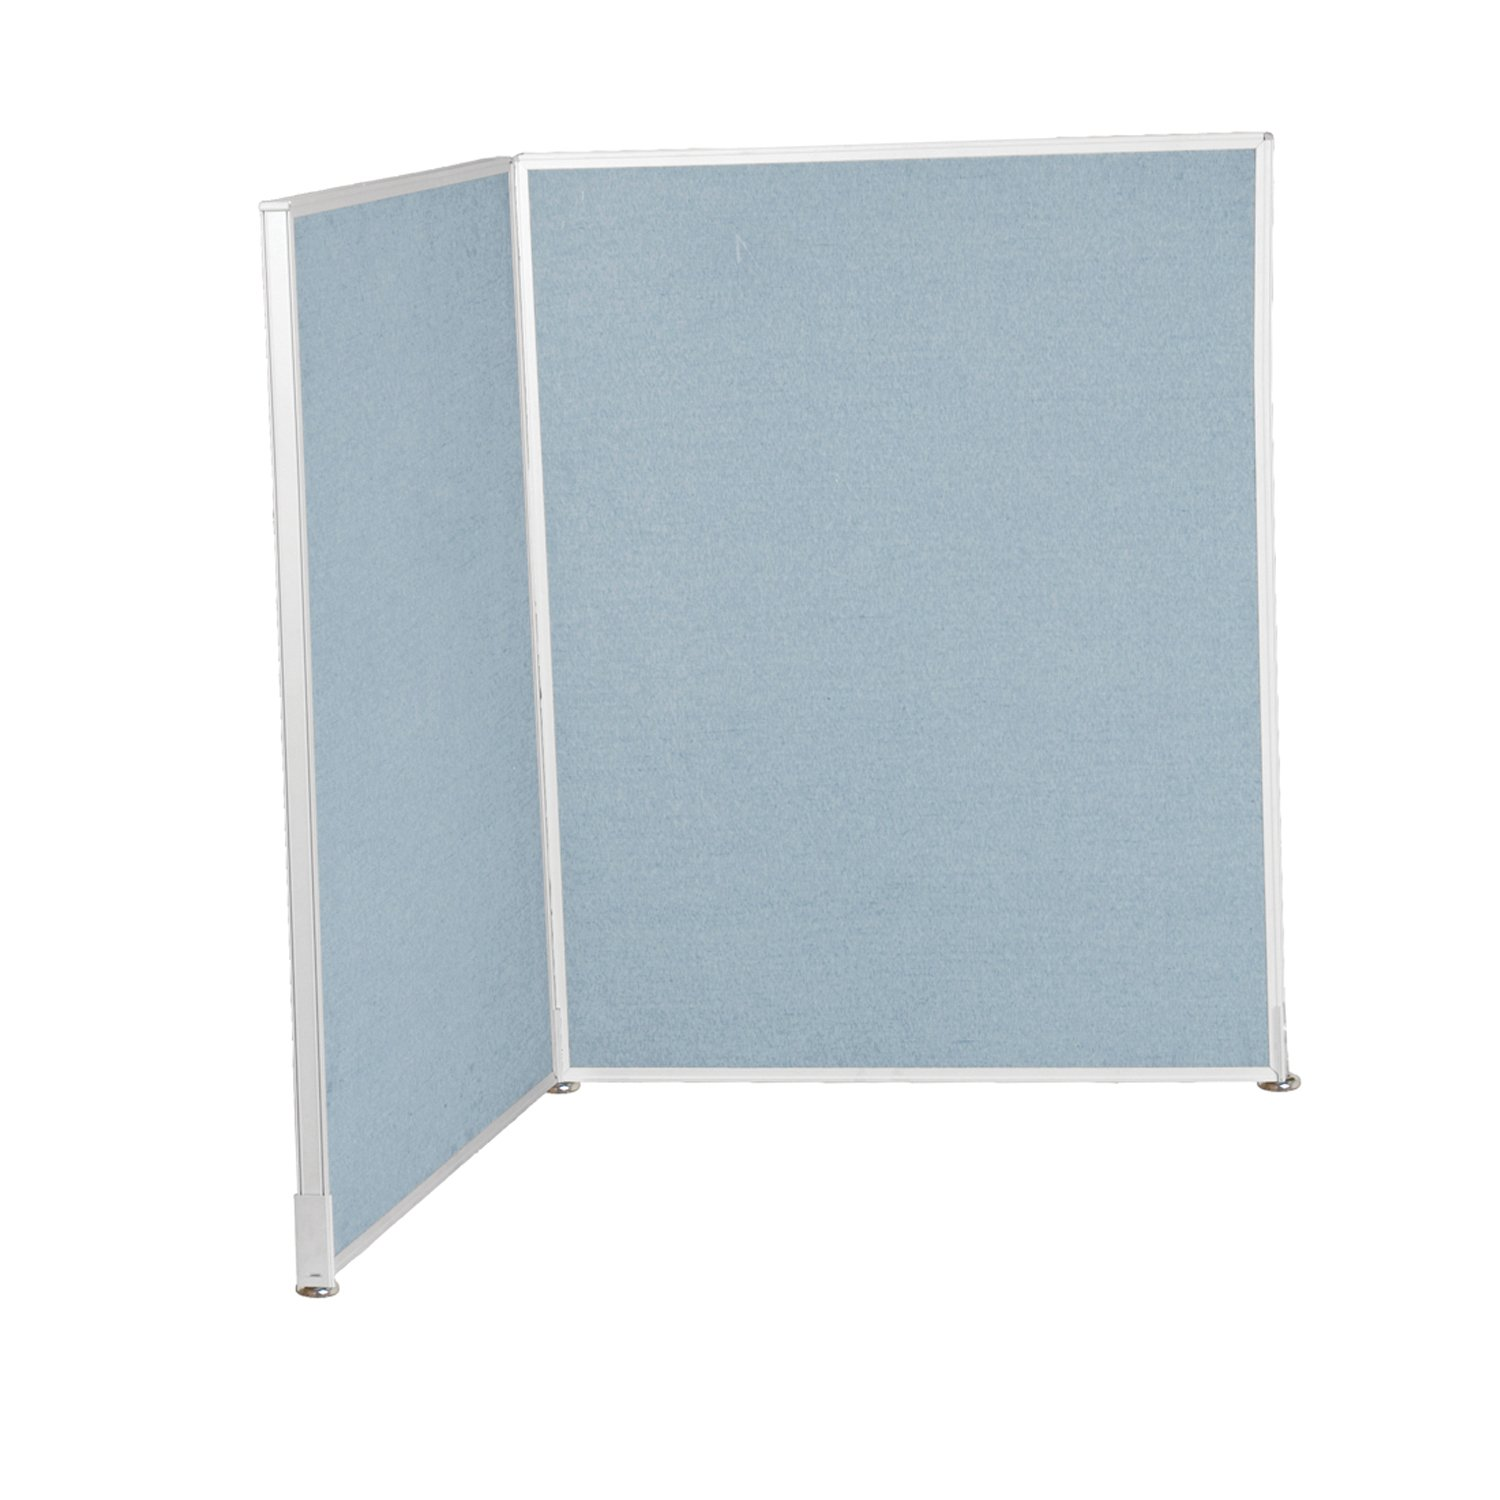 Office cubicle wall High Amazoncom Balt 6h 3w Office Cubicle Wall Divider Parition Standard Modular Panel Blue Office Products Amazoncom Amazoncom Balt 6h 3w Office Cubicle Wall Divider Parition